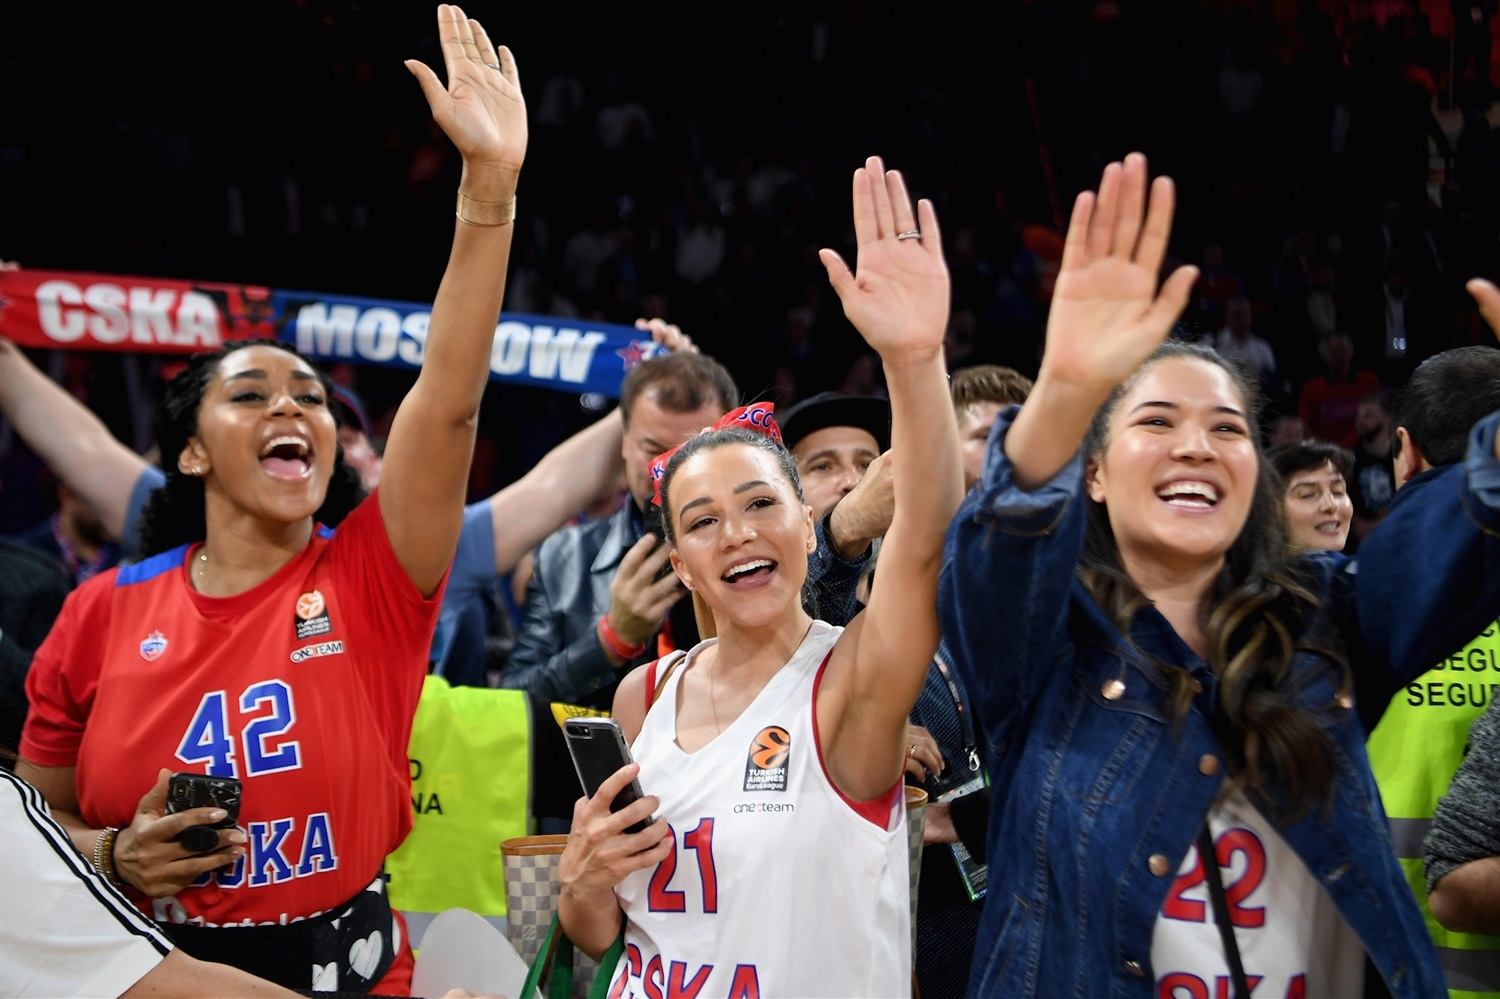 Wifes Hines, Clyburn and Higgins - CSKA Moscow Champ - Final Four Vitoria-Gasteiz 2019 - EB18